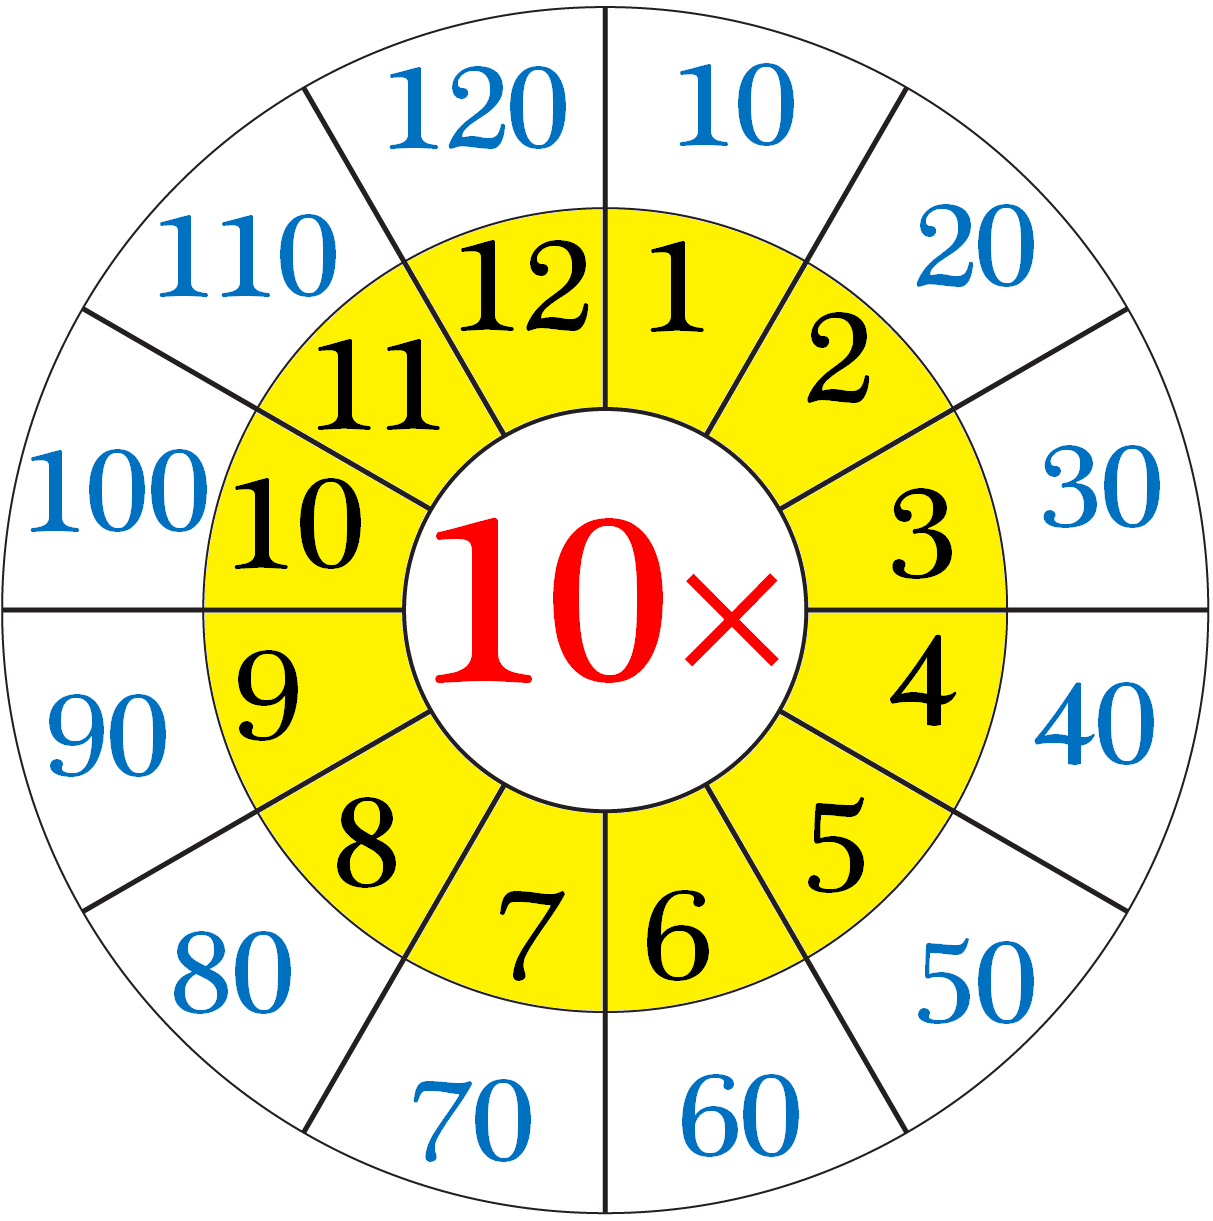 Multiplication Table of 10